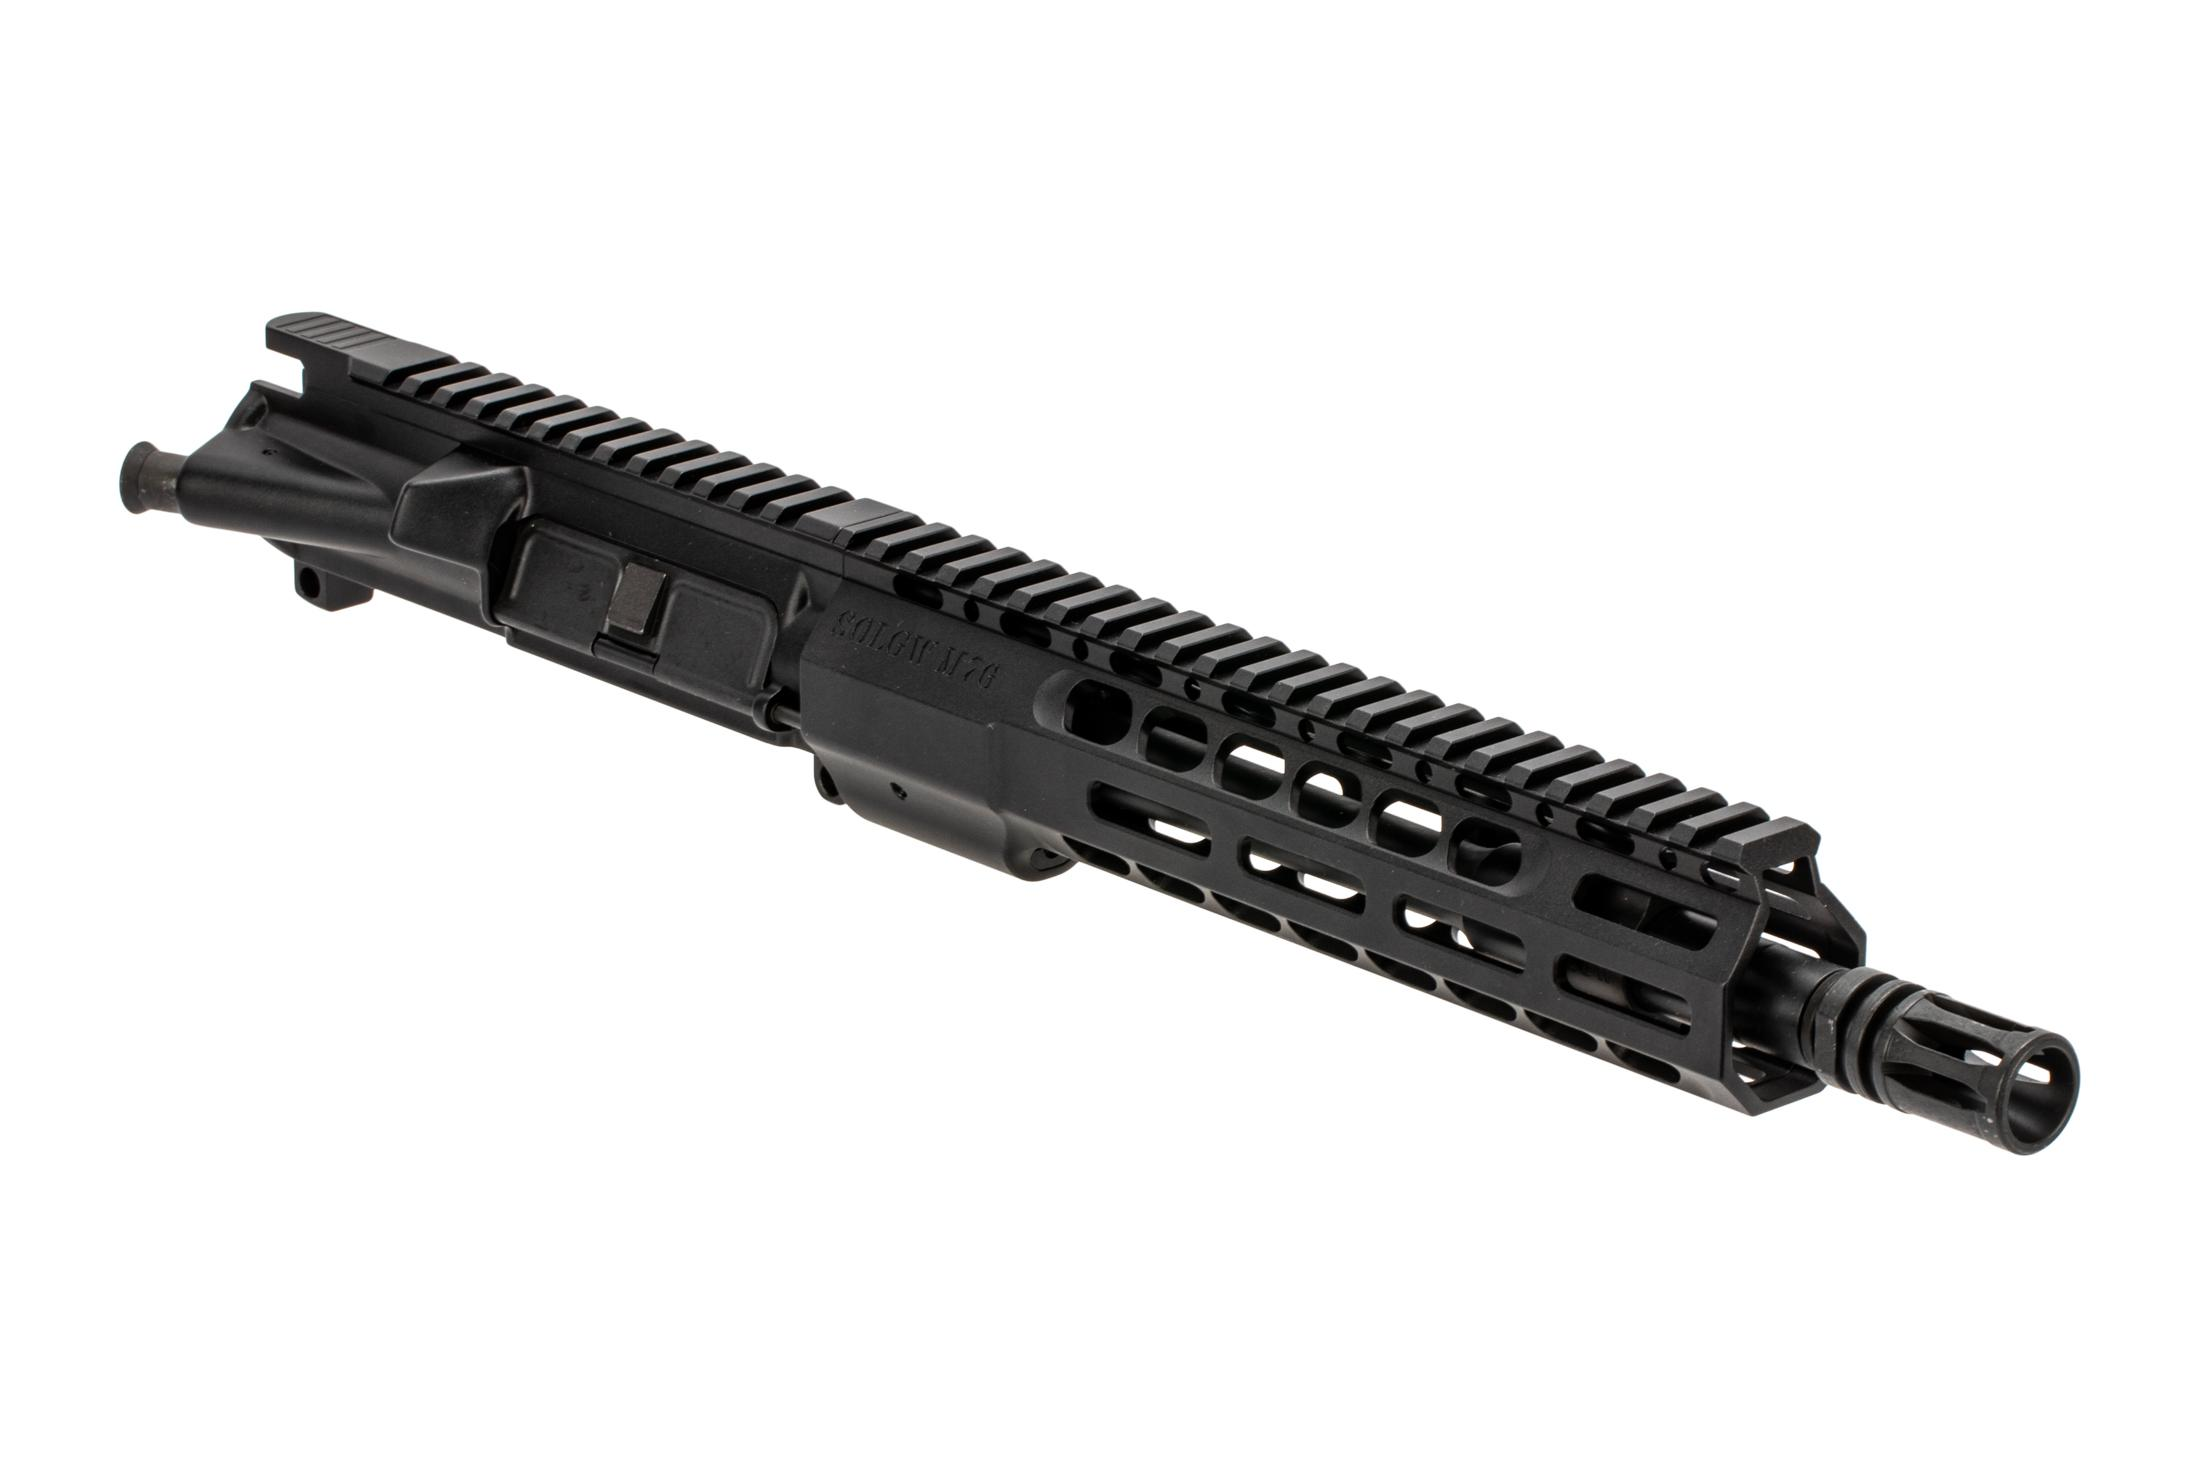 Sons of Liberty Gun Works 10.5 M4-76 AR15 barreled upper receiver in 5.56 NATO with M-LOK rail